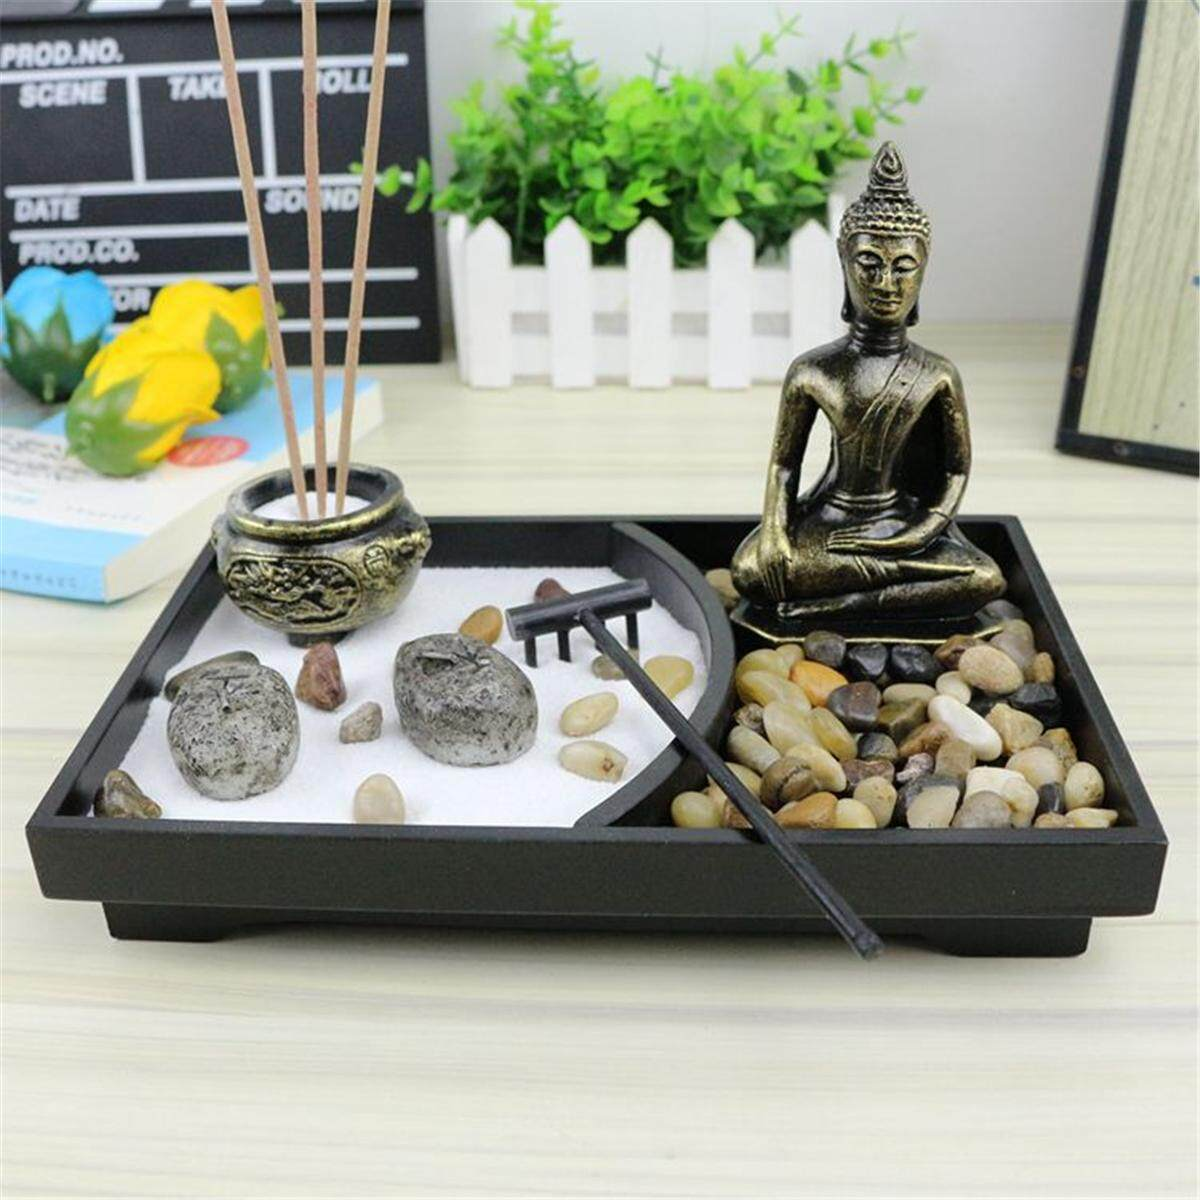 Table Top Zen Garden Other Home Décor Zen Garden Kit Tabletop Decor Meditation Sand